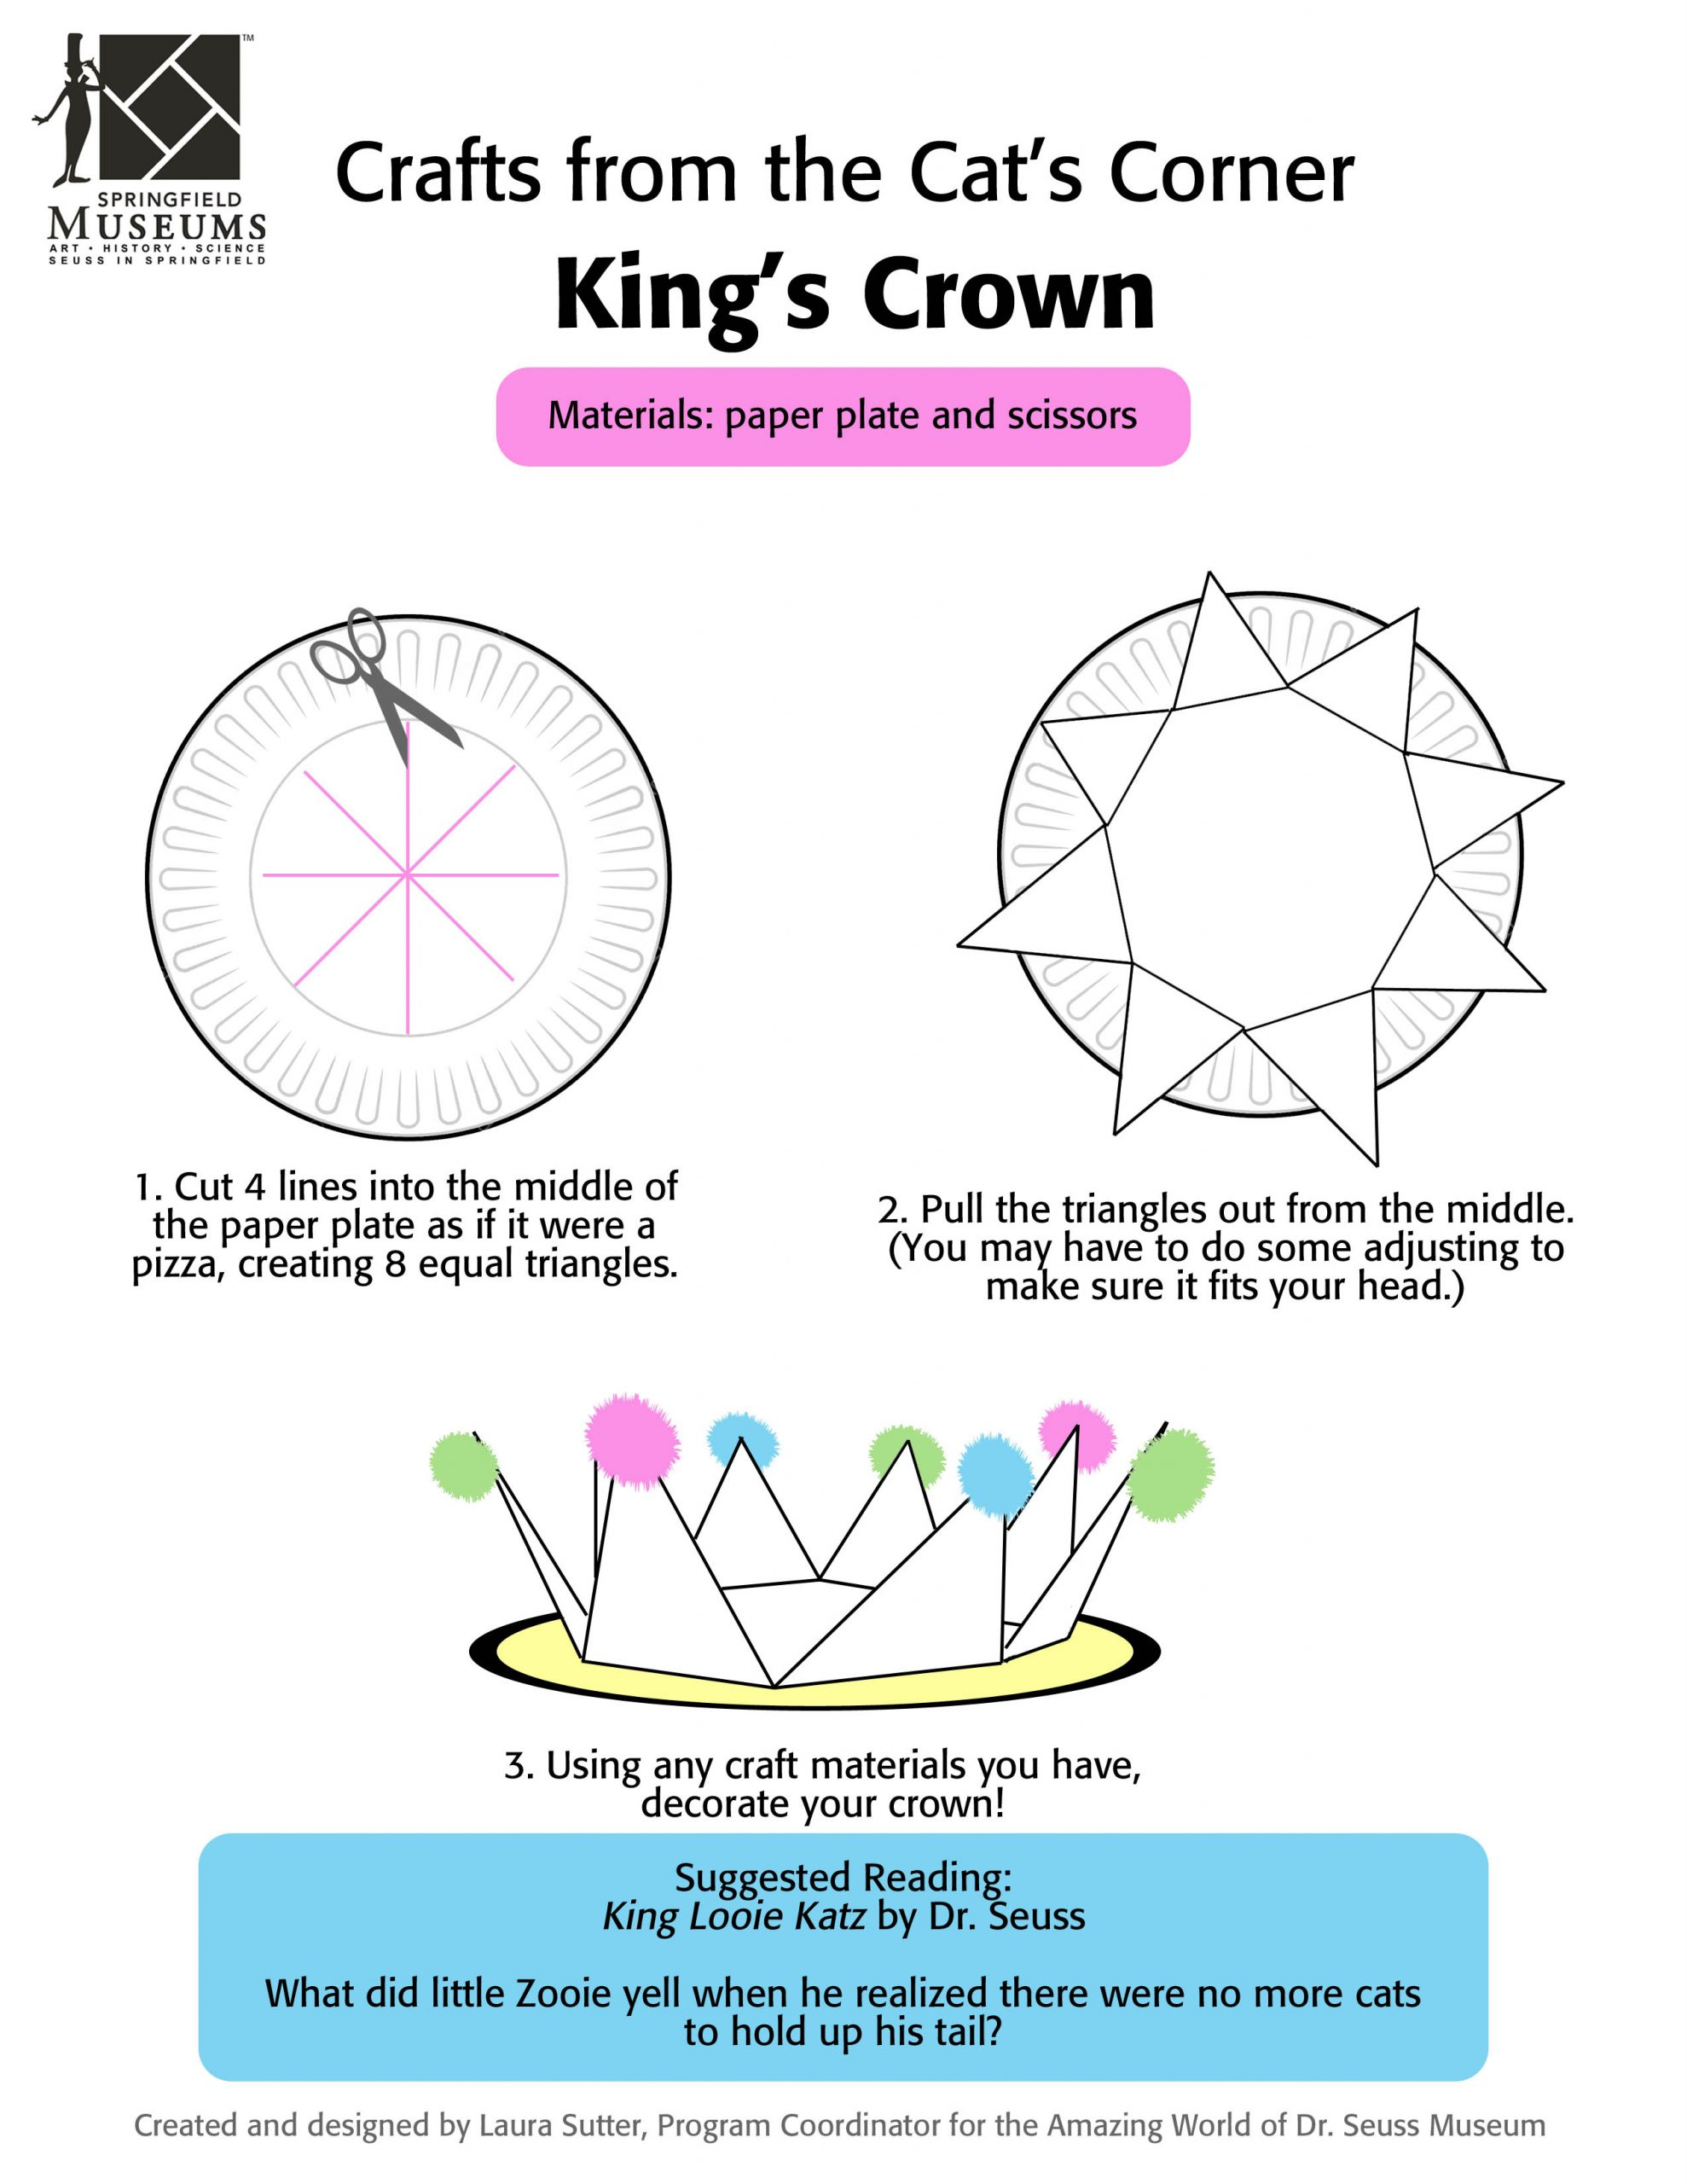 Crafts from the Cat's Corner: King's Crown